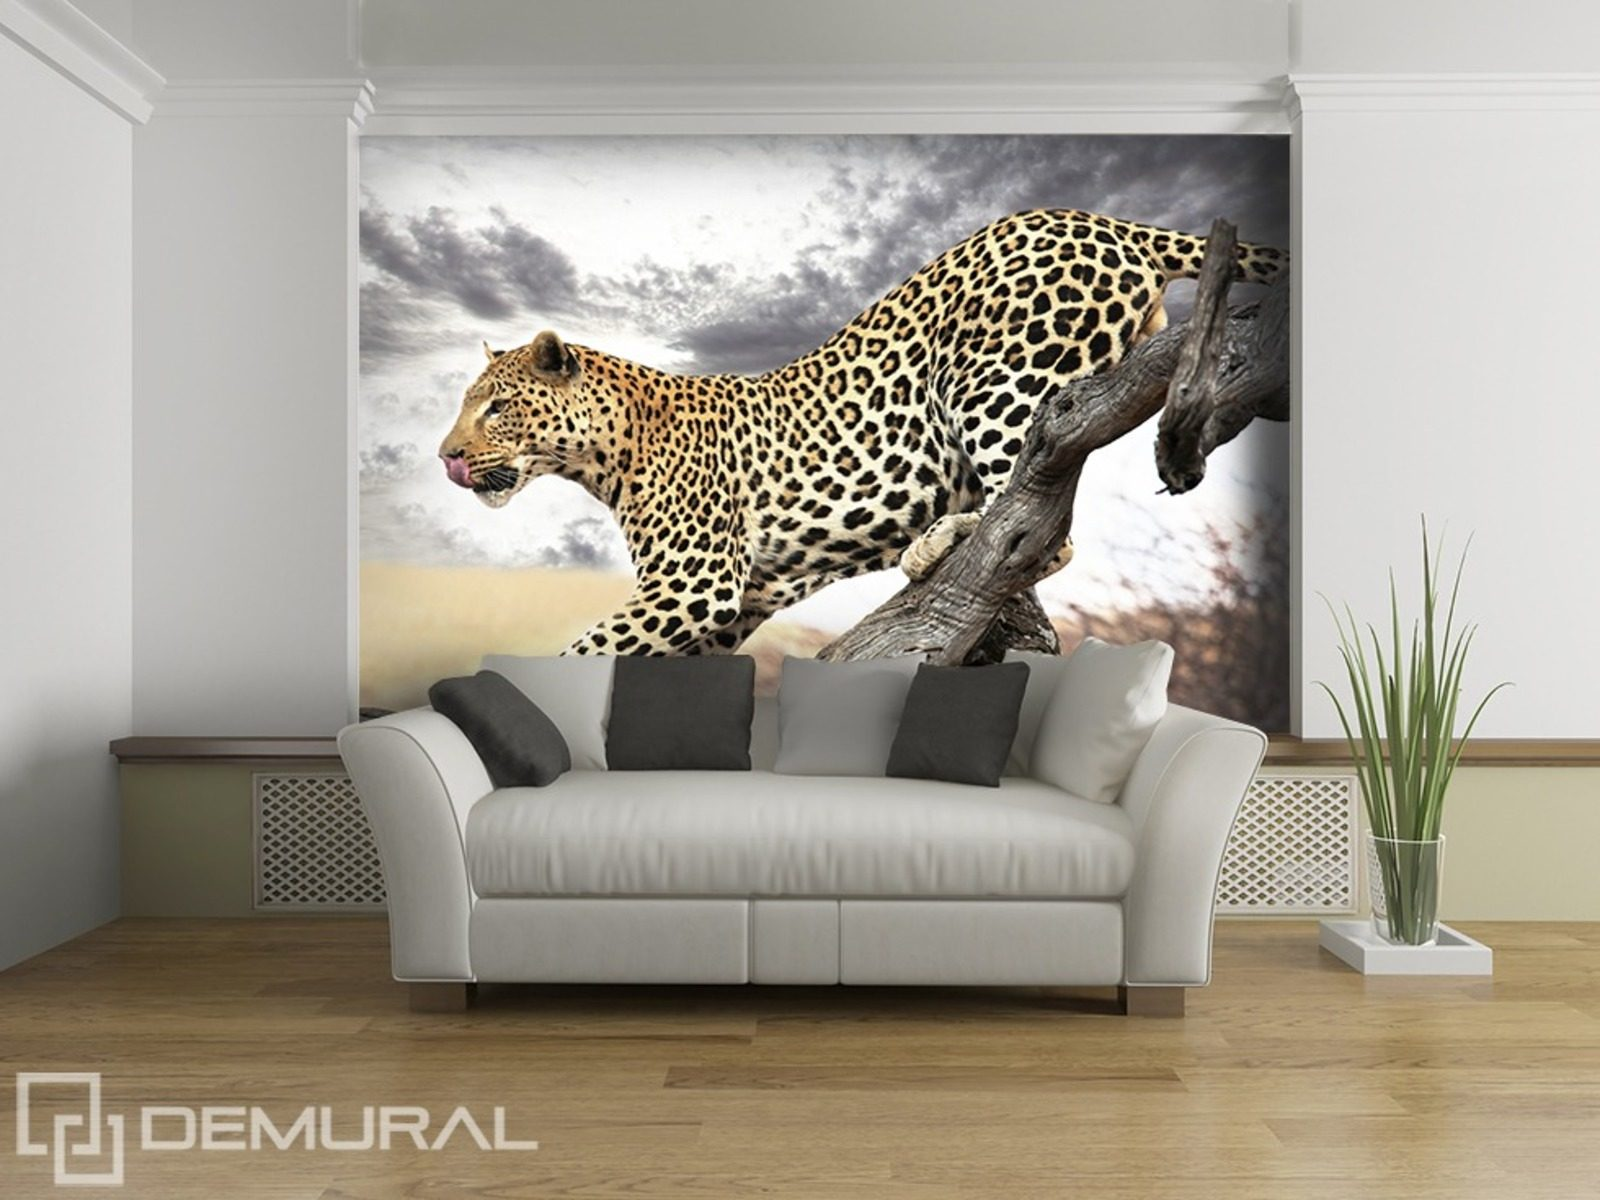 Jumping leopard animals wallpaper mural photo for Animal mural wallpaper